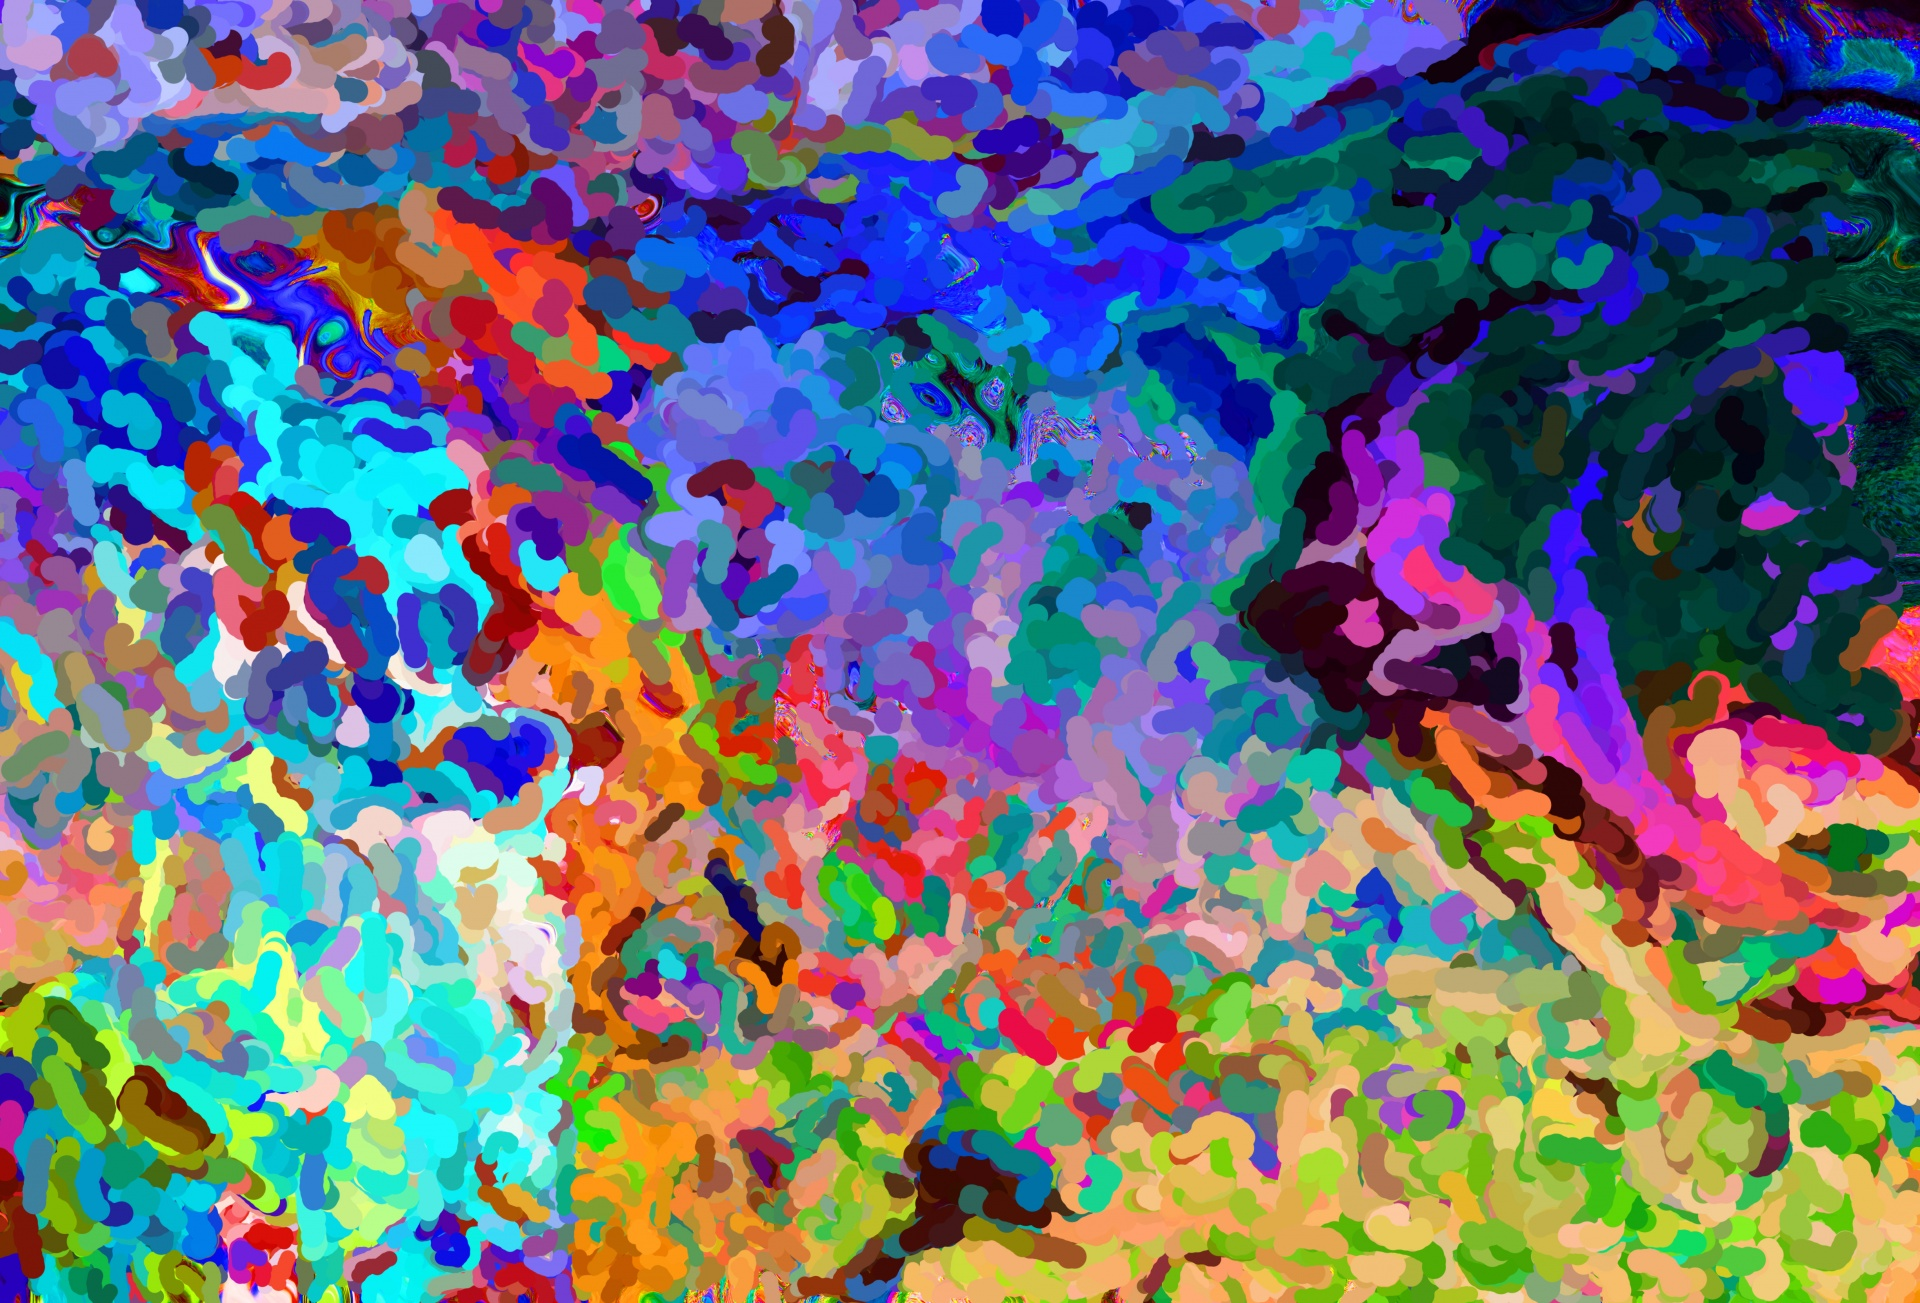 Background Wallpaper Abstract Colorful Artistic Free Image